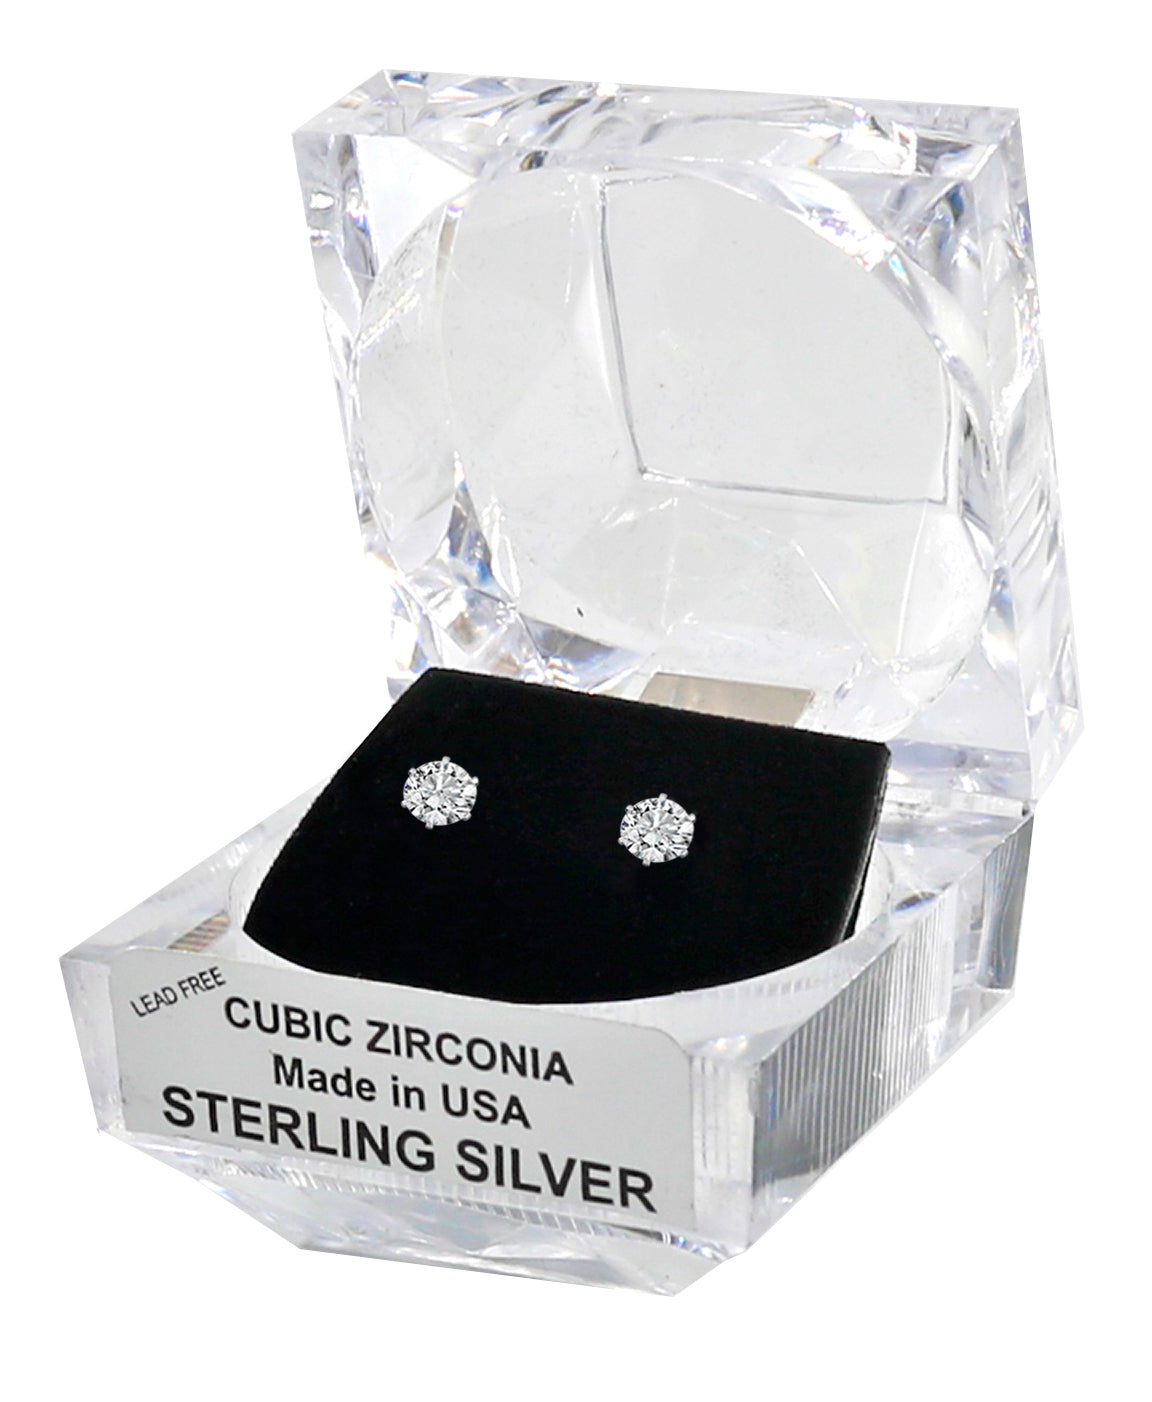 c877a4c15578 Sterling Silver Cubic Zirconia Earrings with Crystal Gift Box – TrueSlim  Jeans